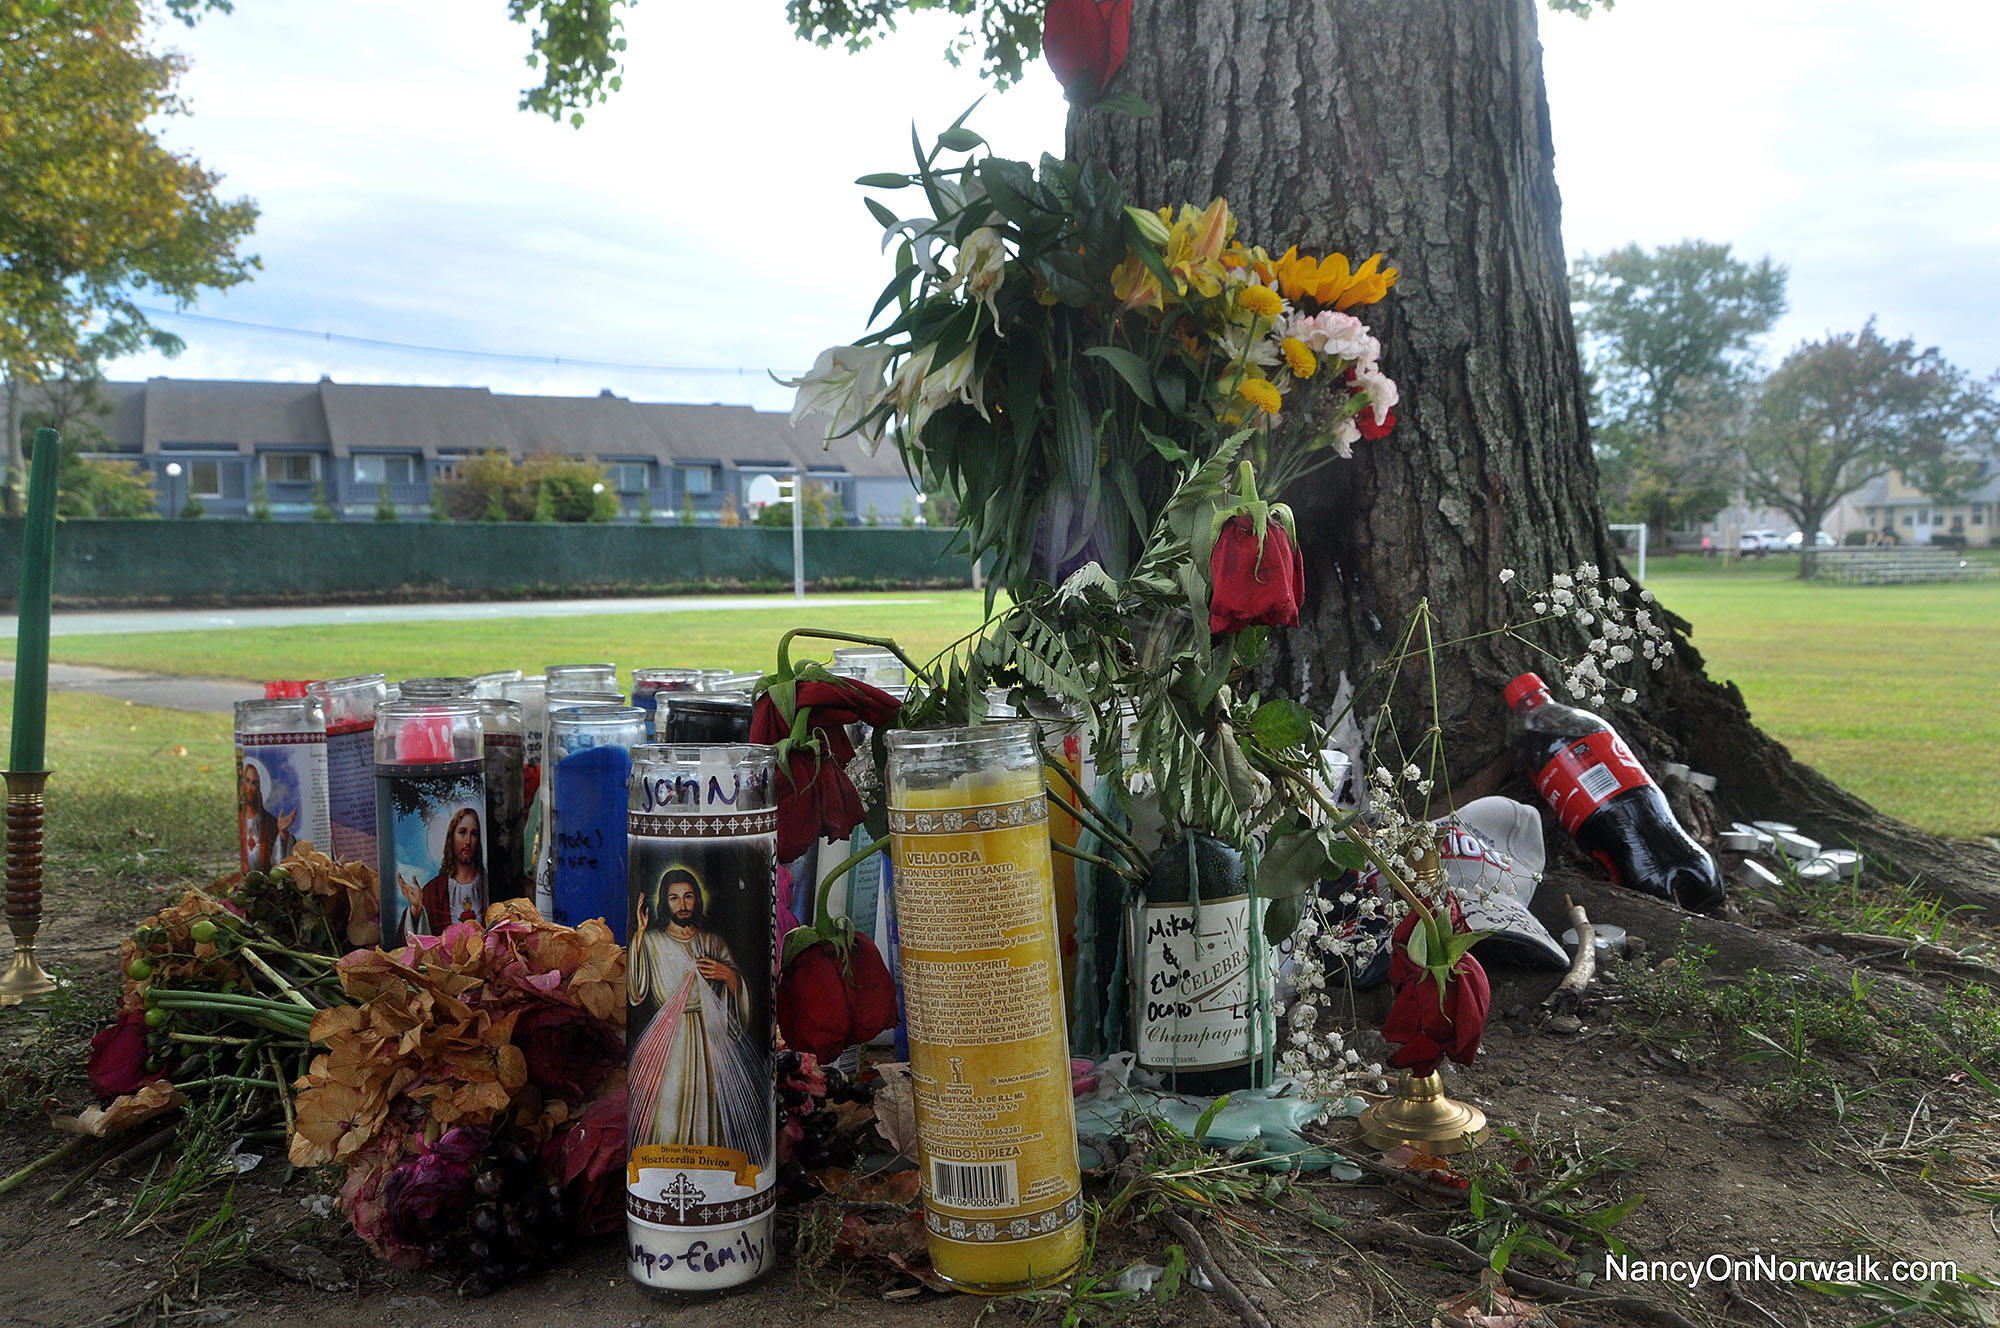 A memorial marks the area where 27-year-old Norwalker John Soyland was killed in a single-car crash Oct. 4.